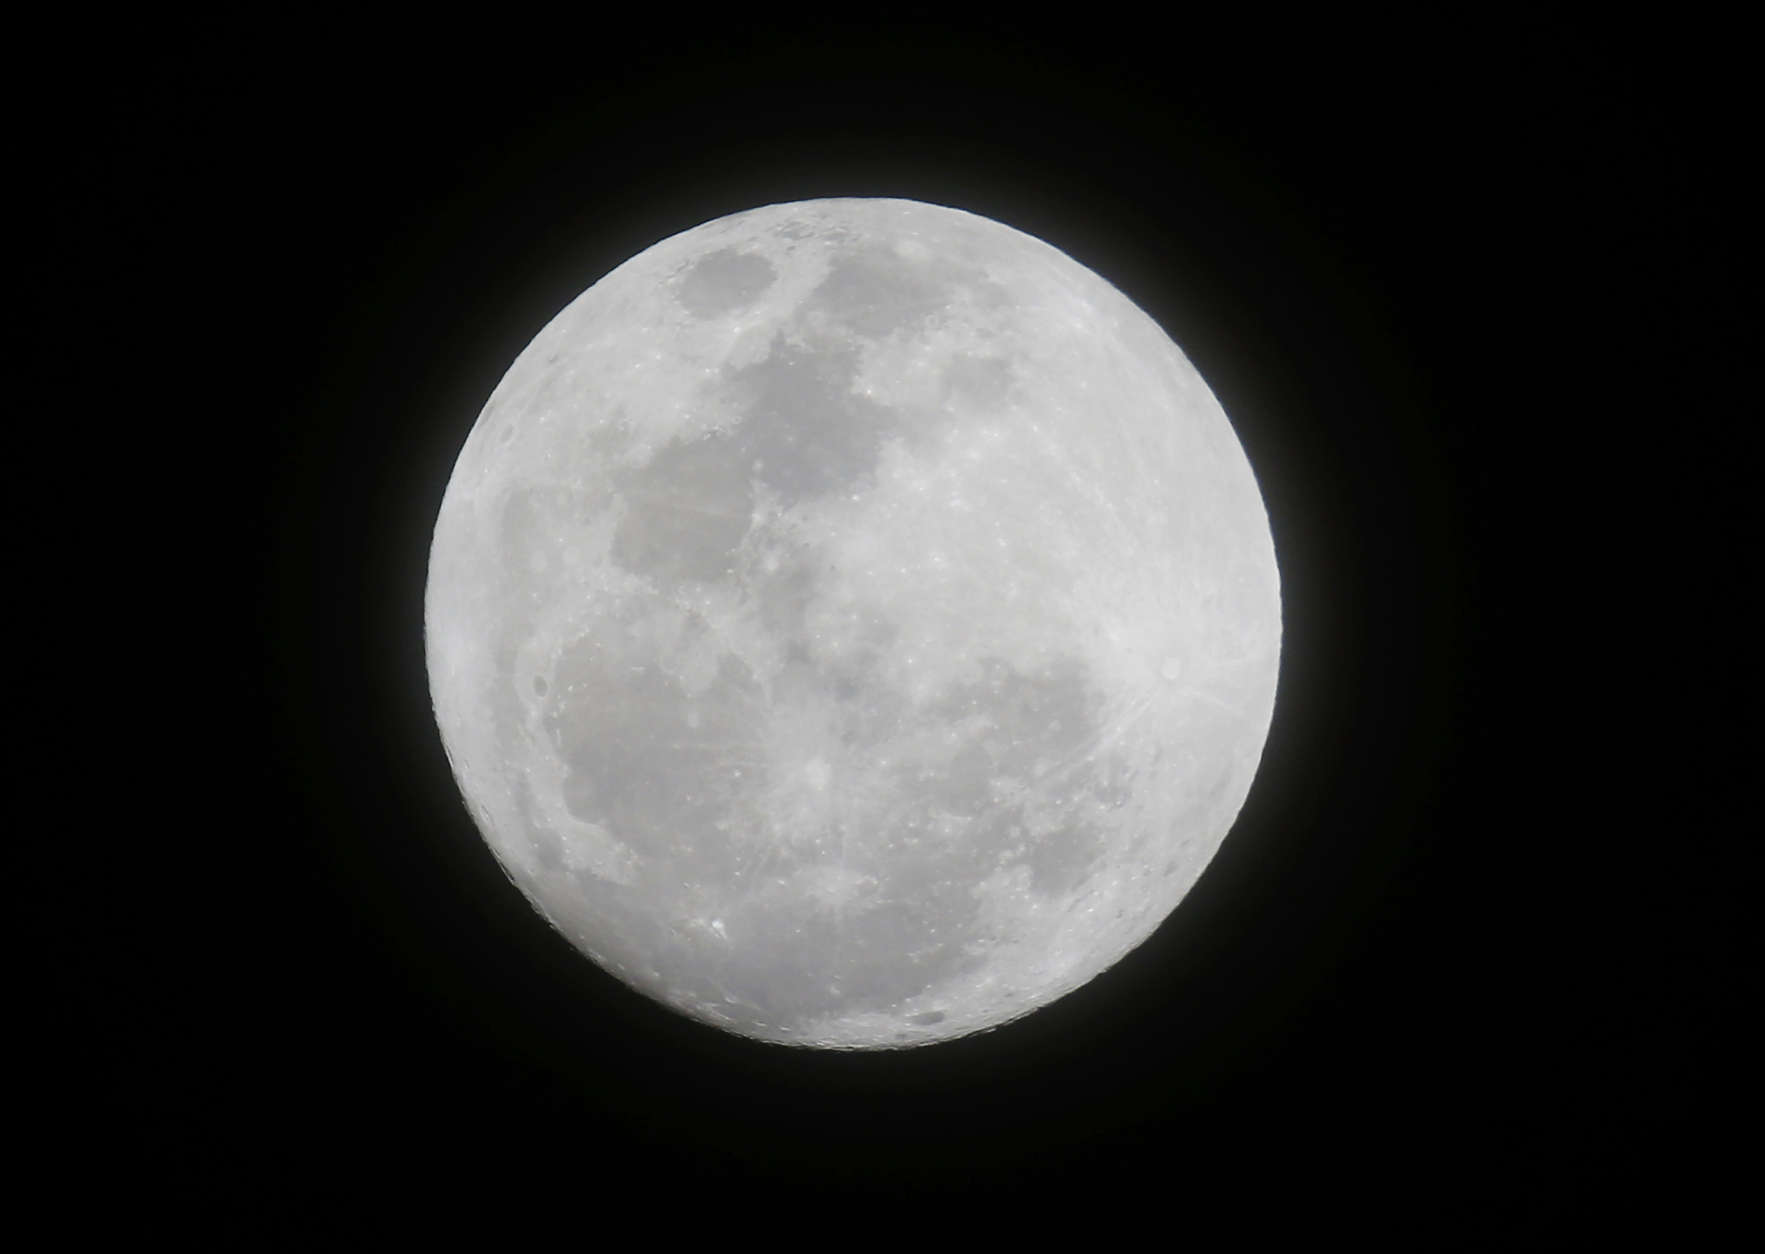 """The moon appears from the sky in the first supermoon of 2018 as seen from suburban Makati city east of Manila, Philippines on Monday, Jan. 1, 2018. Another """"Super Blood Blue Moon"""" is expected also later this month which according to scientists will coincide with a Total Lunar Eclipse. A """"supermoon"""" occurs when the moon appears bigger and brighter in the sky. (AP Photo/Bullit Marquez)"""